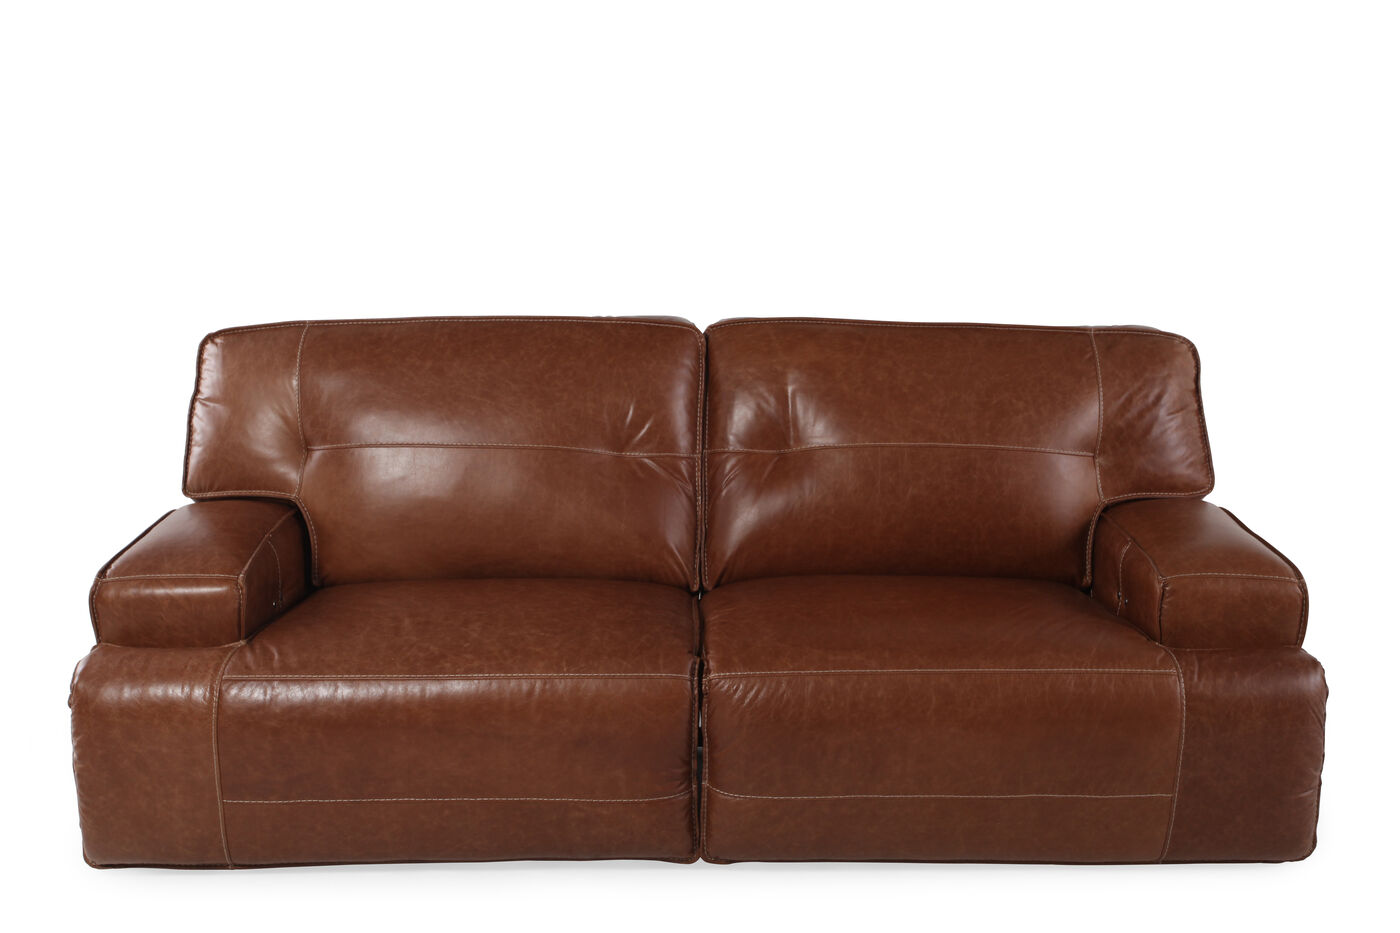 Leather 95 Quot Power Reclining Sofa In Caramel Brown Mathis